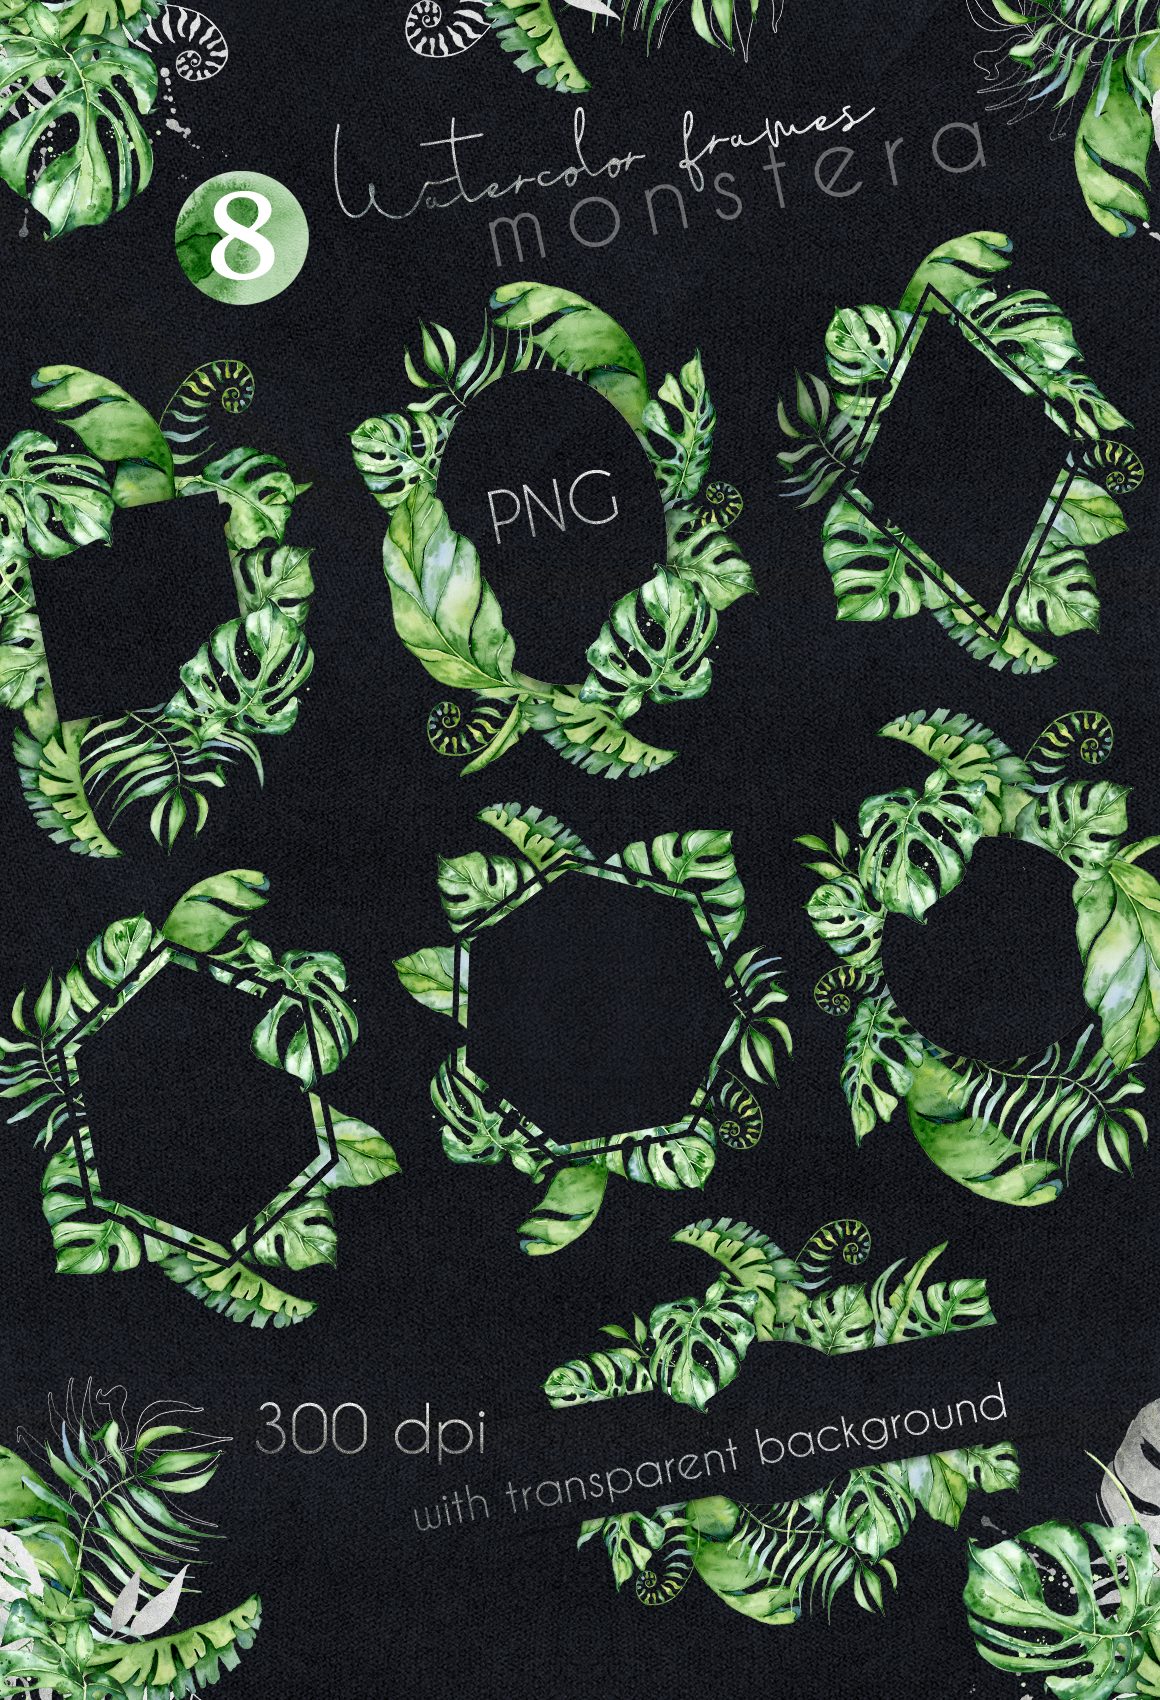 Mistery Monstera - tropical leaves watercolor illustration example image 20